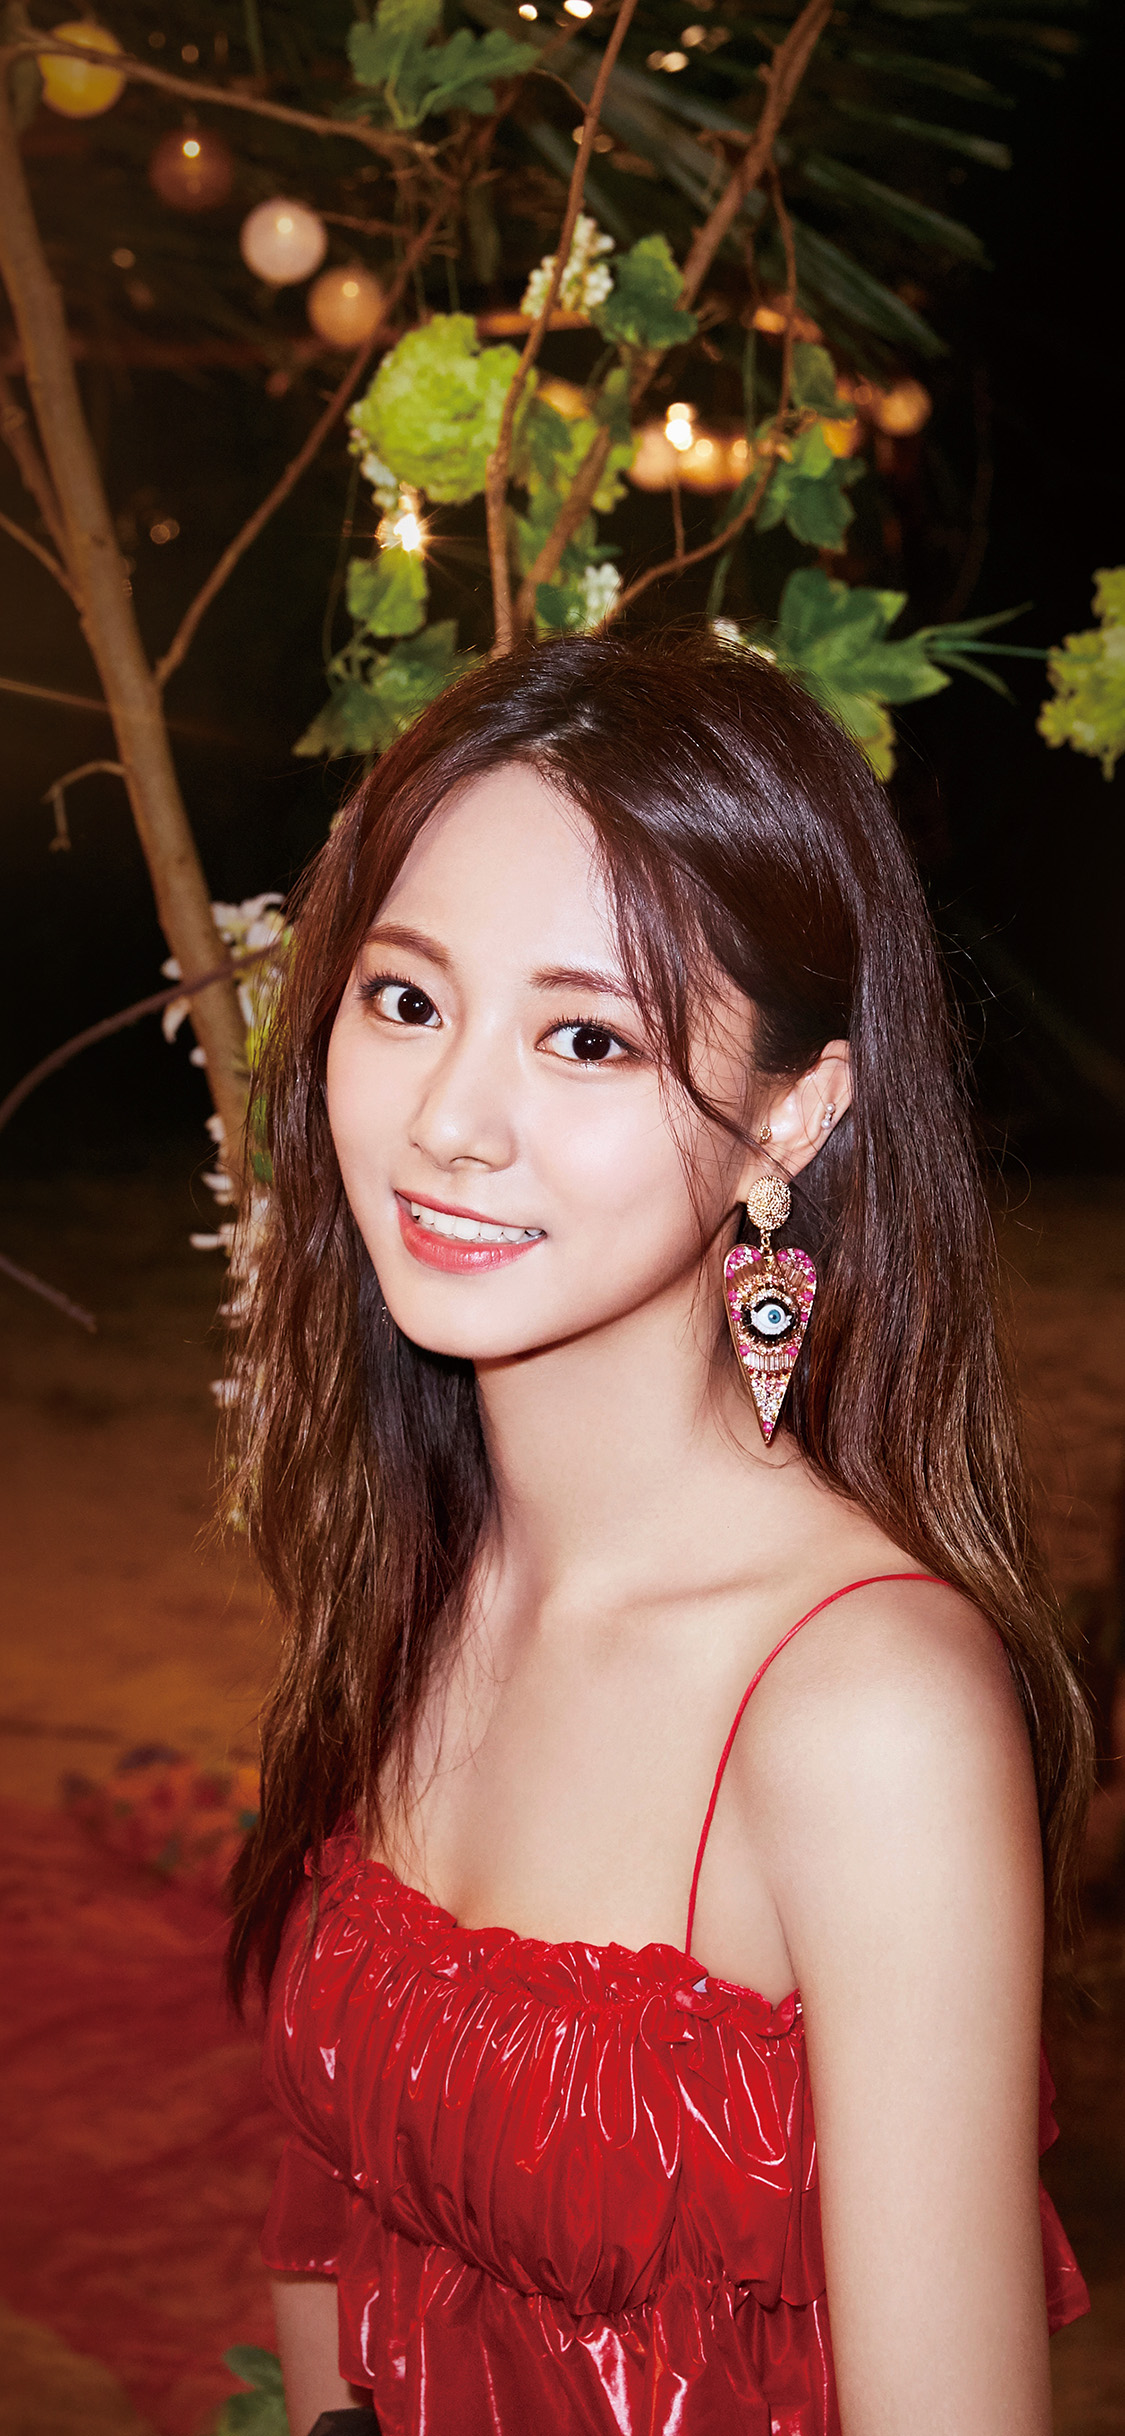 Iphonexpapers Com Iphone X Wallpaper Hq84 Kpop Twice Tzuyu Girl